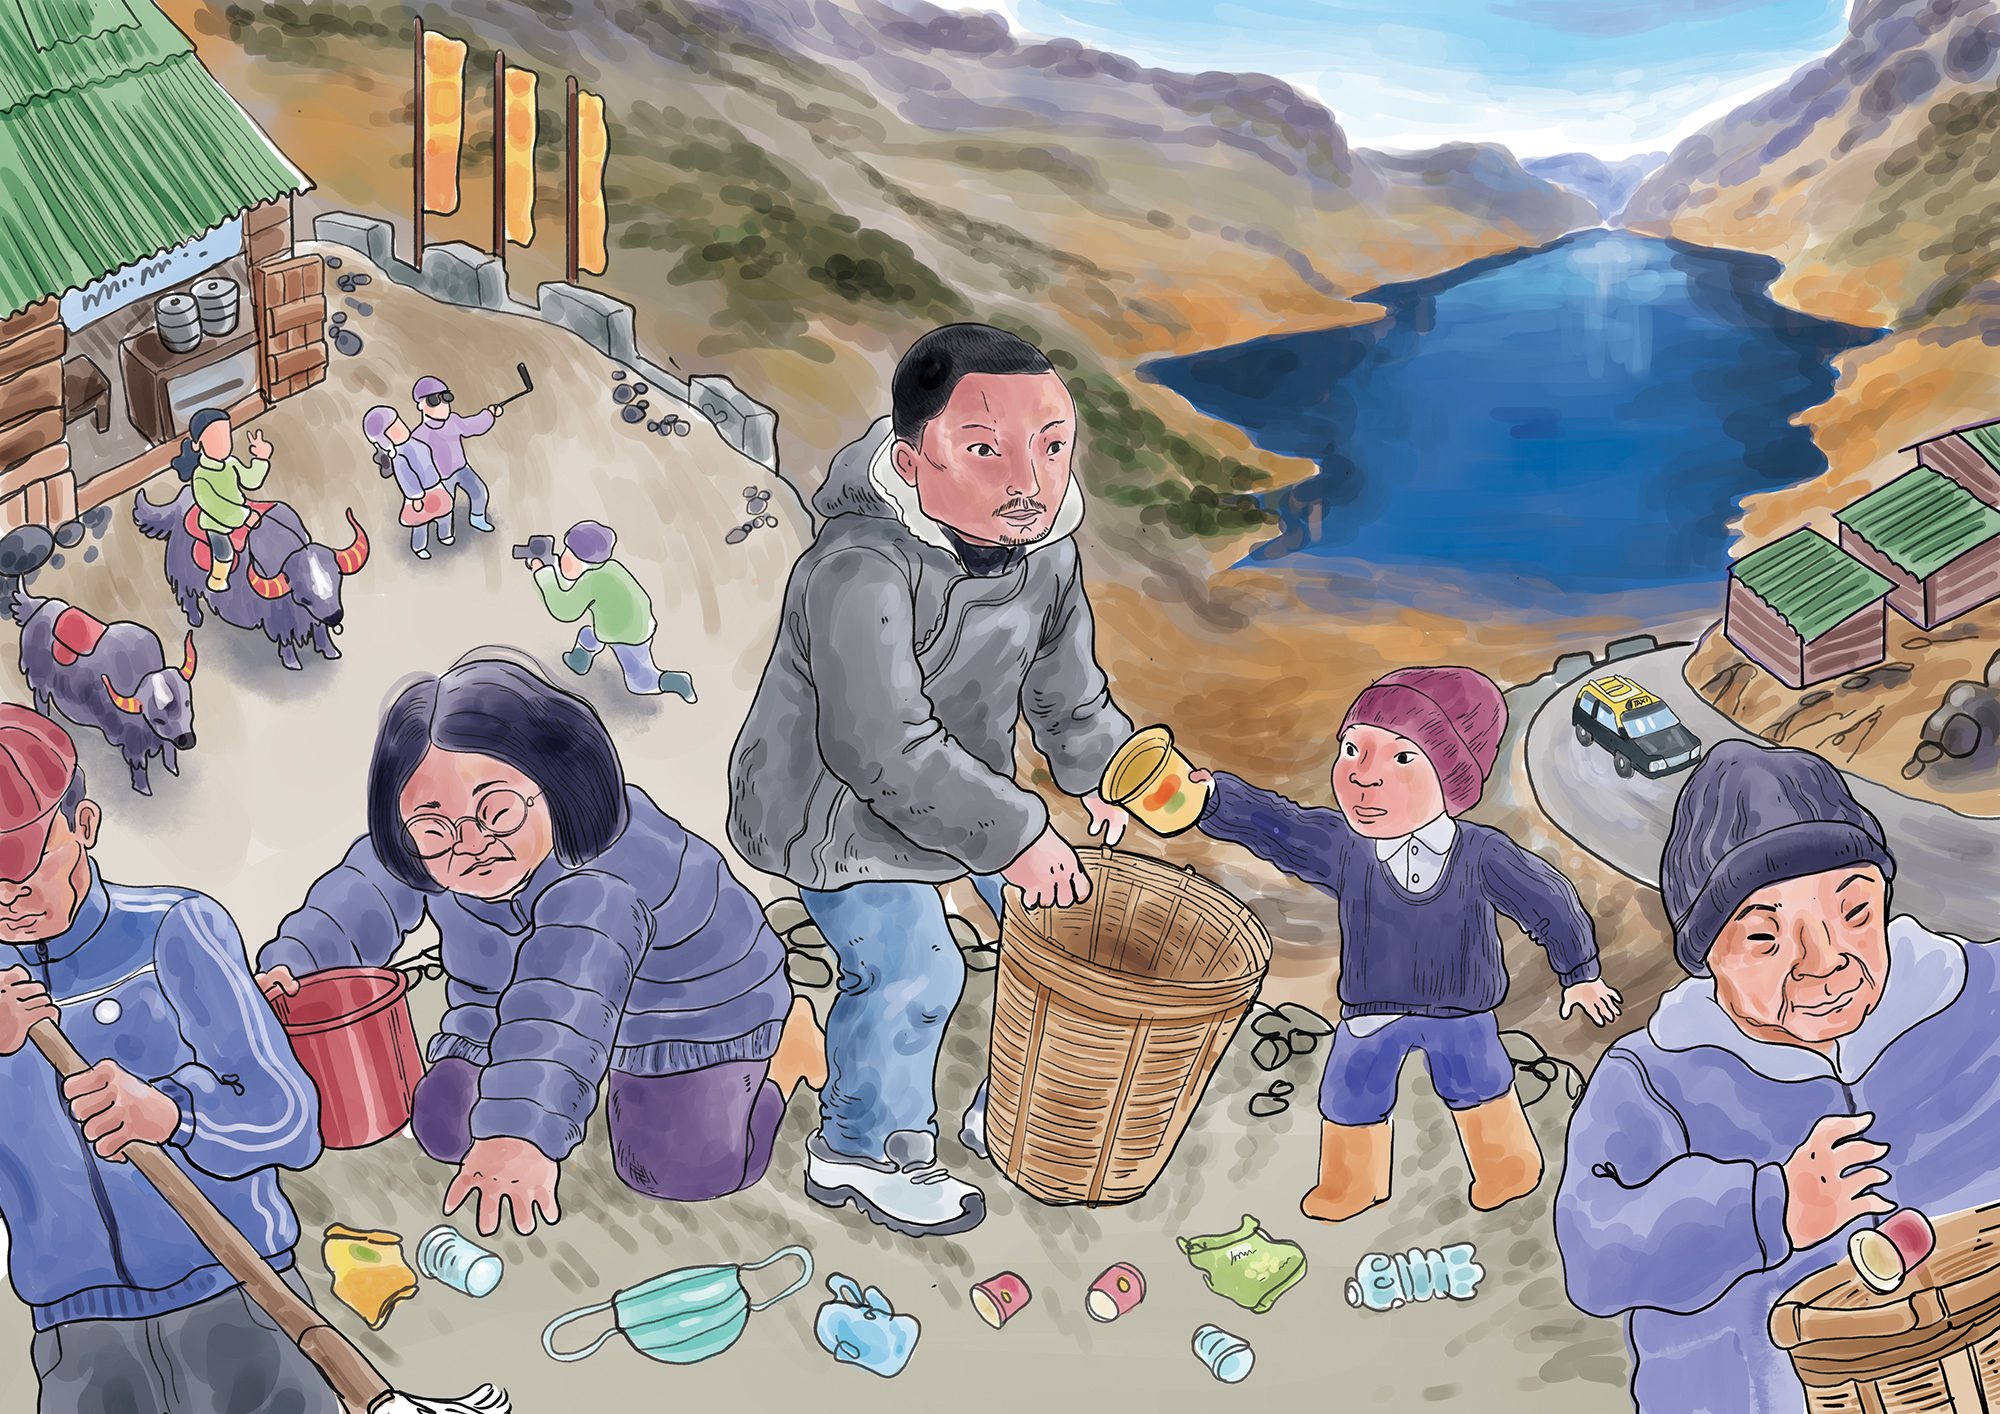 Sangay Lama Sherpa, the Office Secretary of the Tsomgo Lake Conservation Committee, and the local community protect the high-altitude wetland and keep it litter-free. Their effort not only keeps the tourist destination clean but also protects the region's water source. Illustration by Pankaj Saikia for Mongabay.